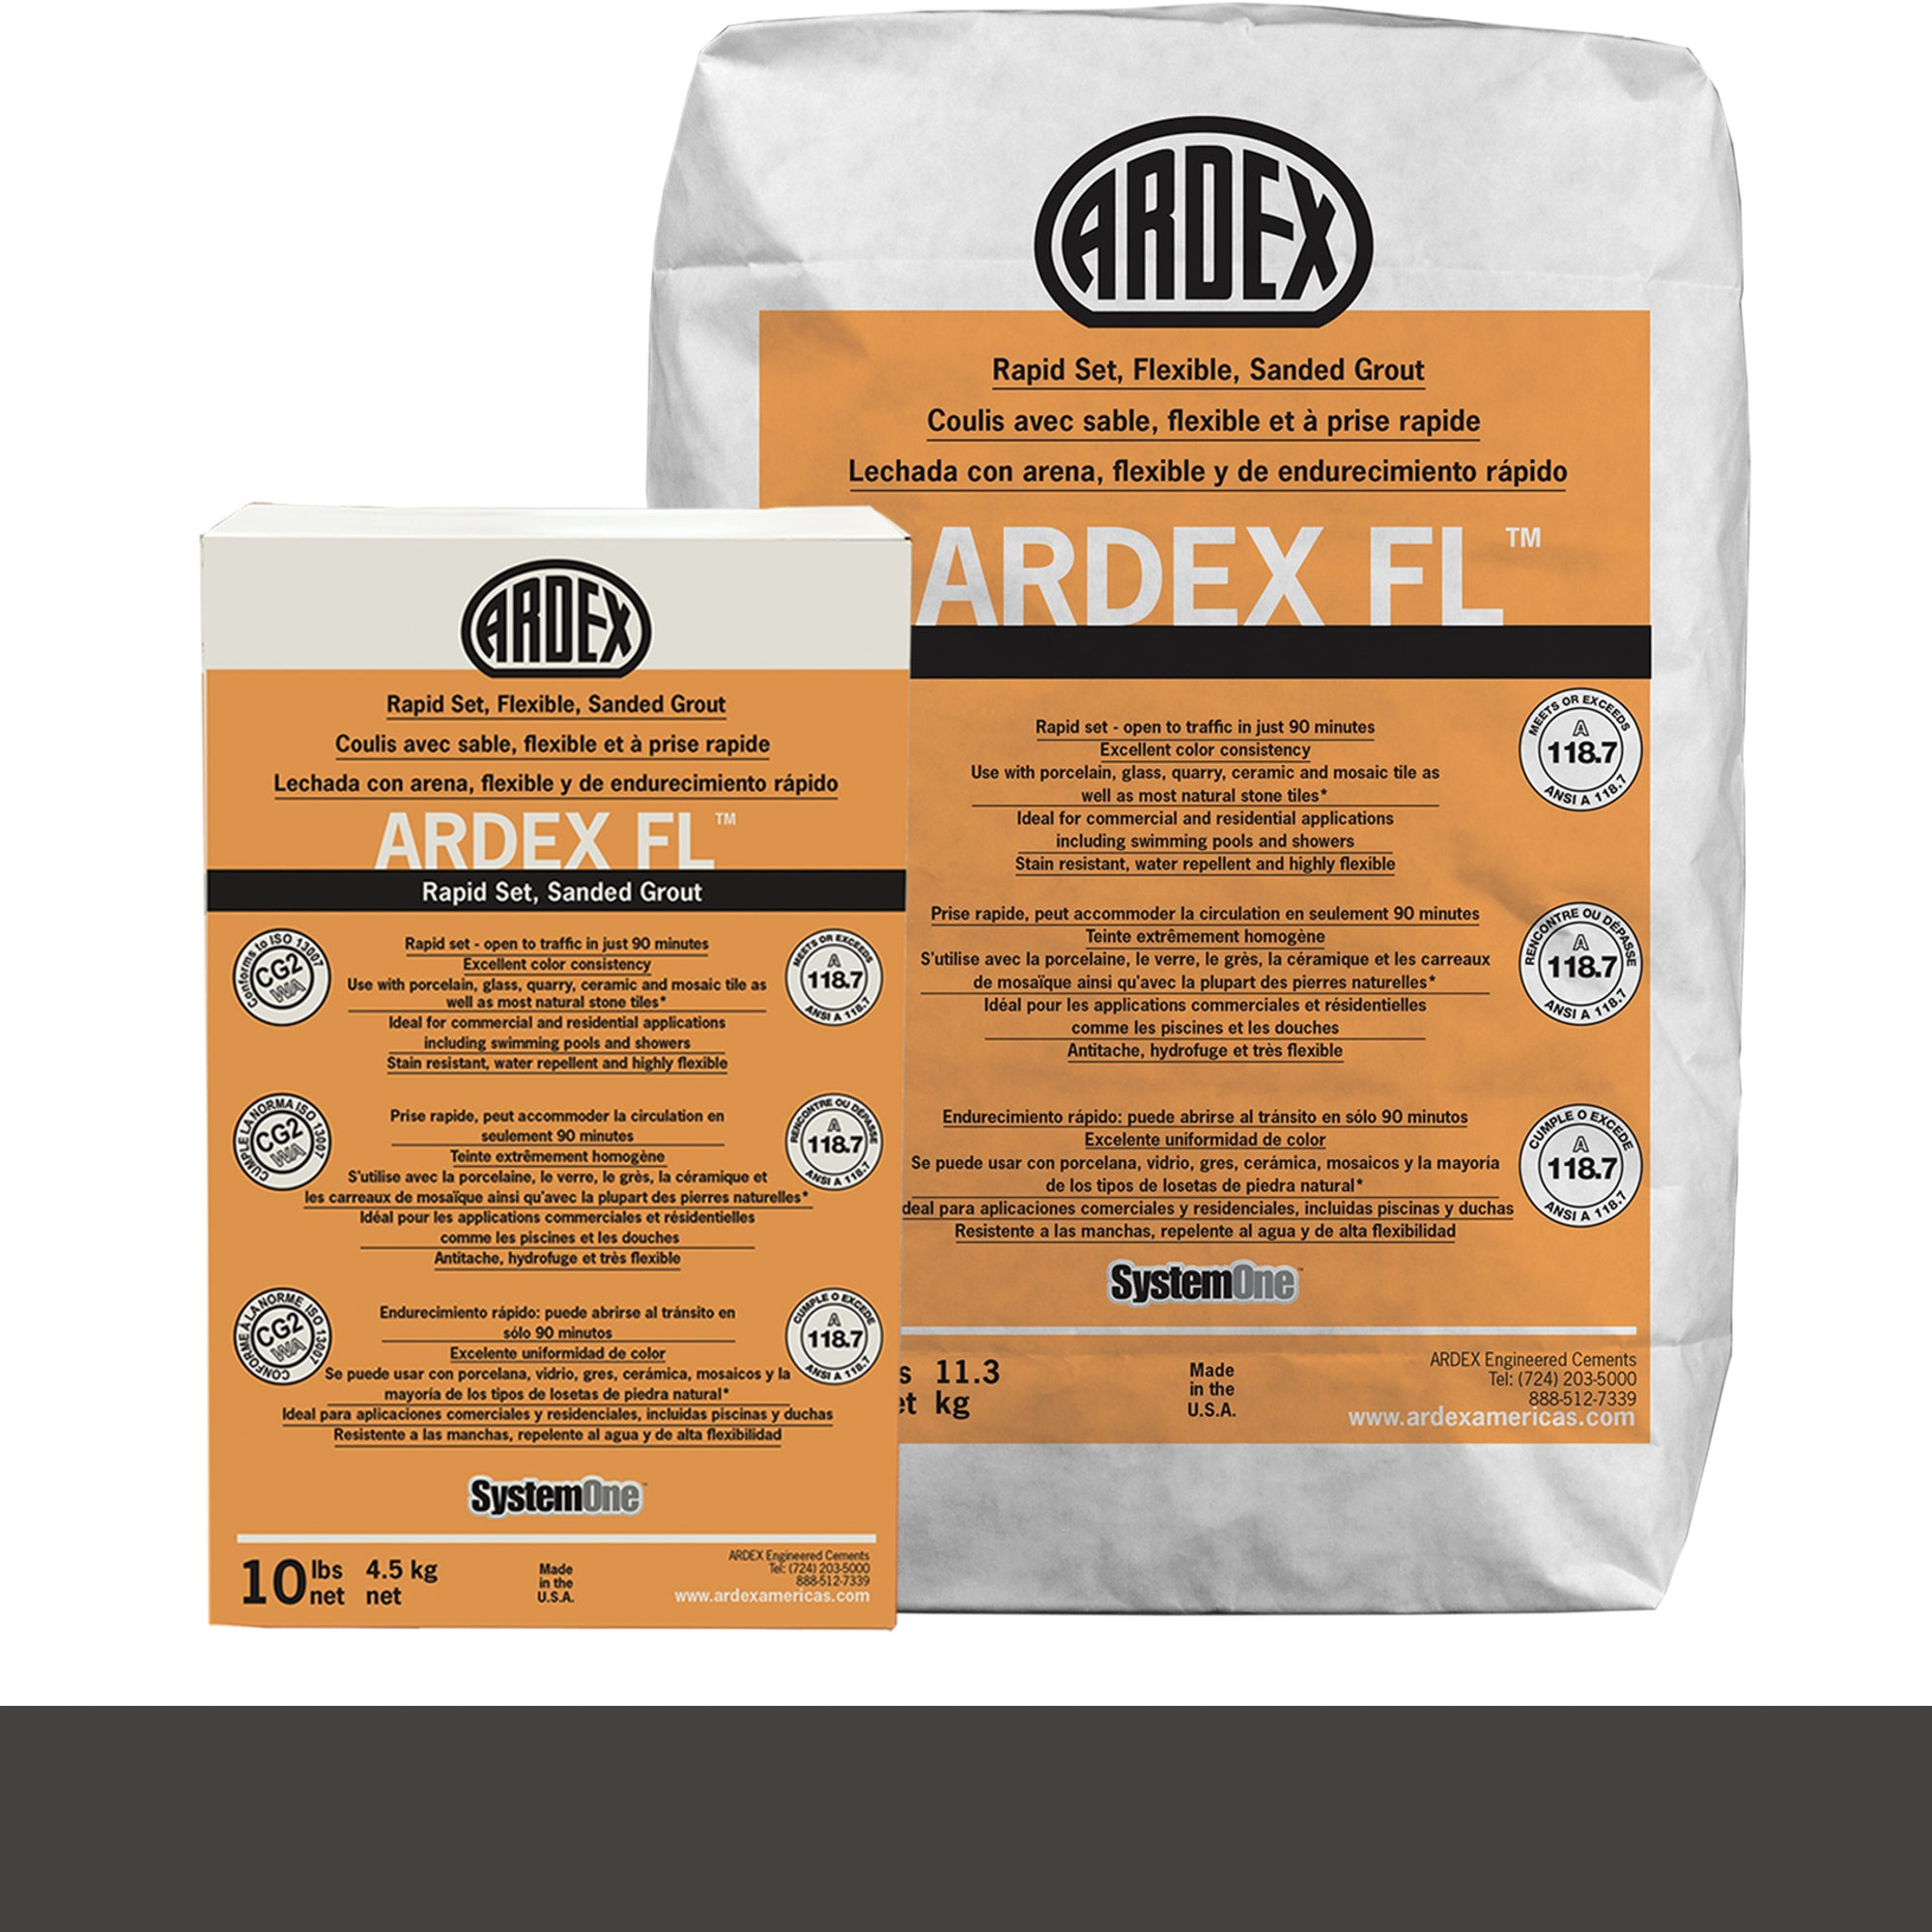 Ardex Fl Grout 23-Charcoal Dust 10-Lb Bag Grout Sanded product photo